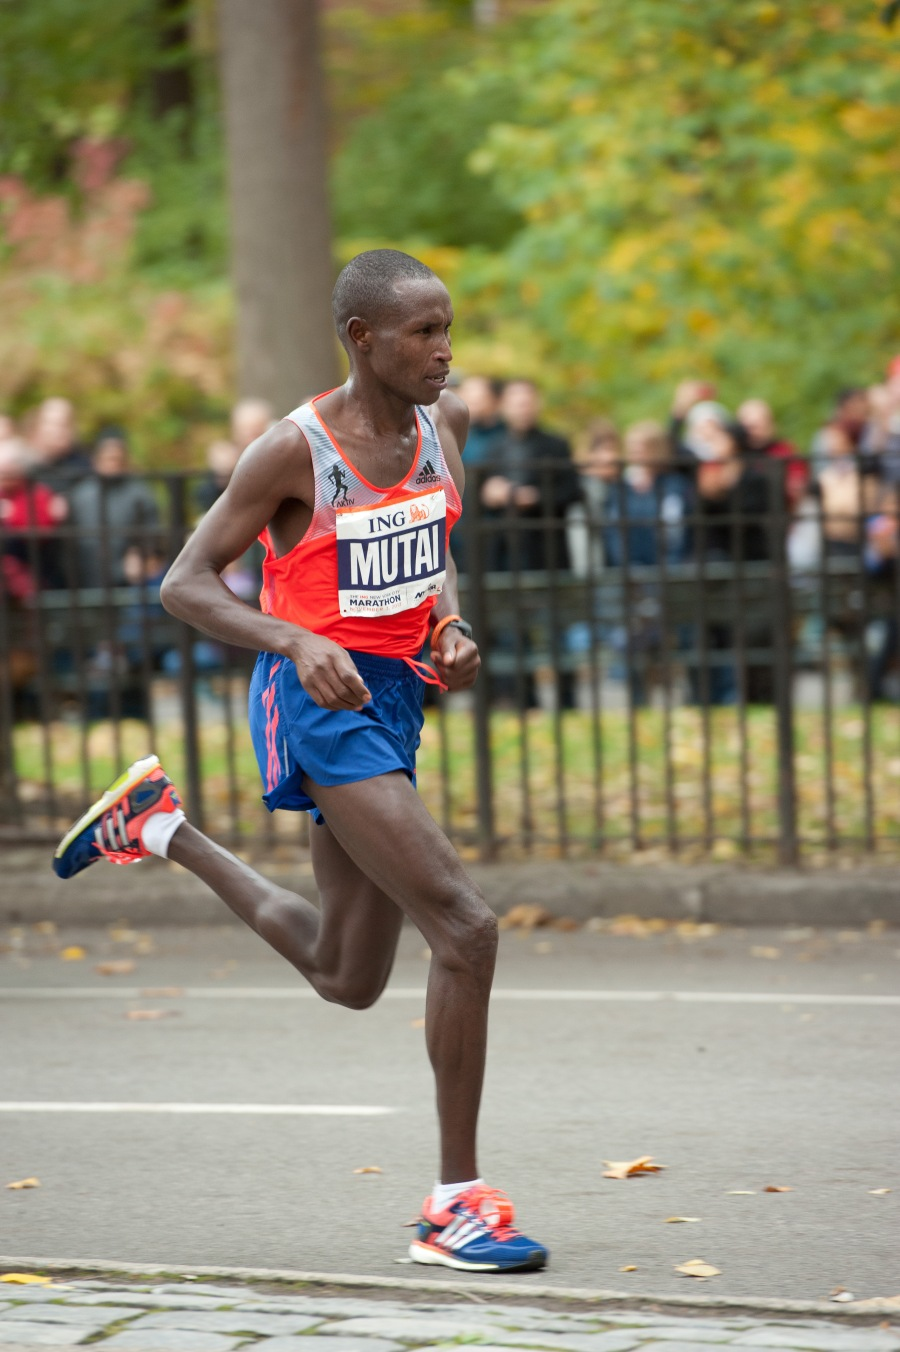 Geoffrey Mutai on his way to winning the world's biggest marathon for the second time in a row.